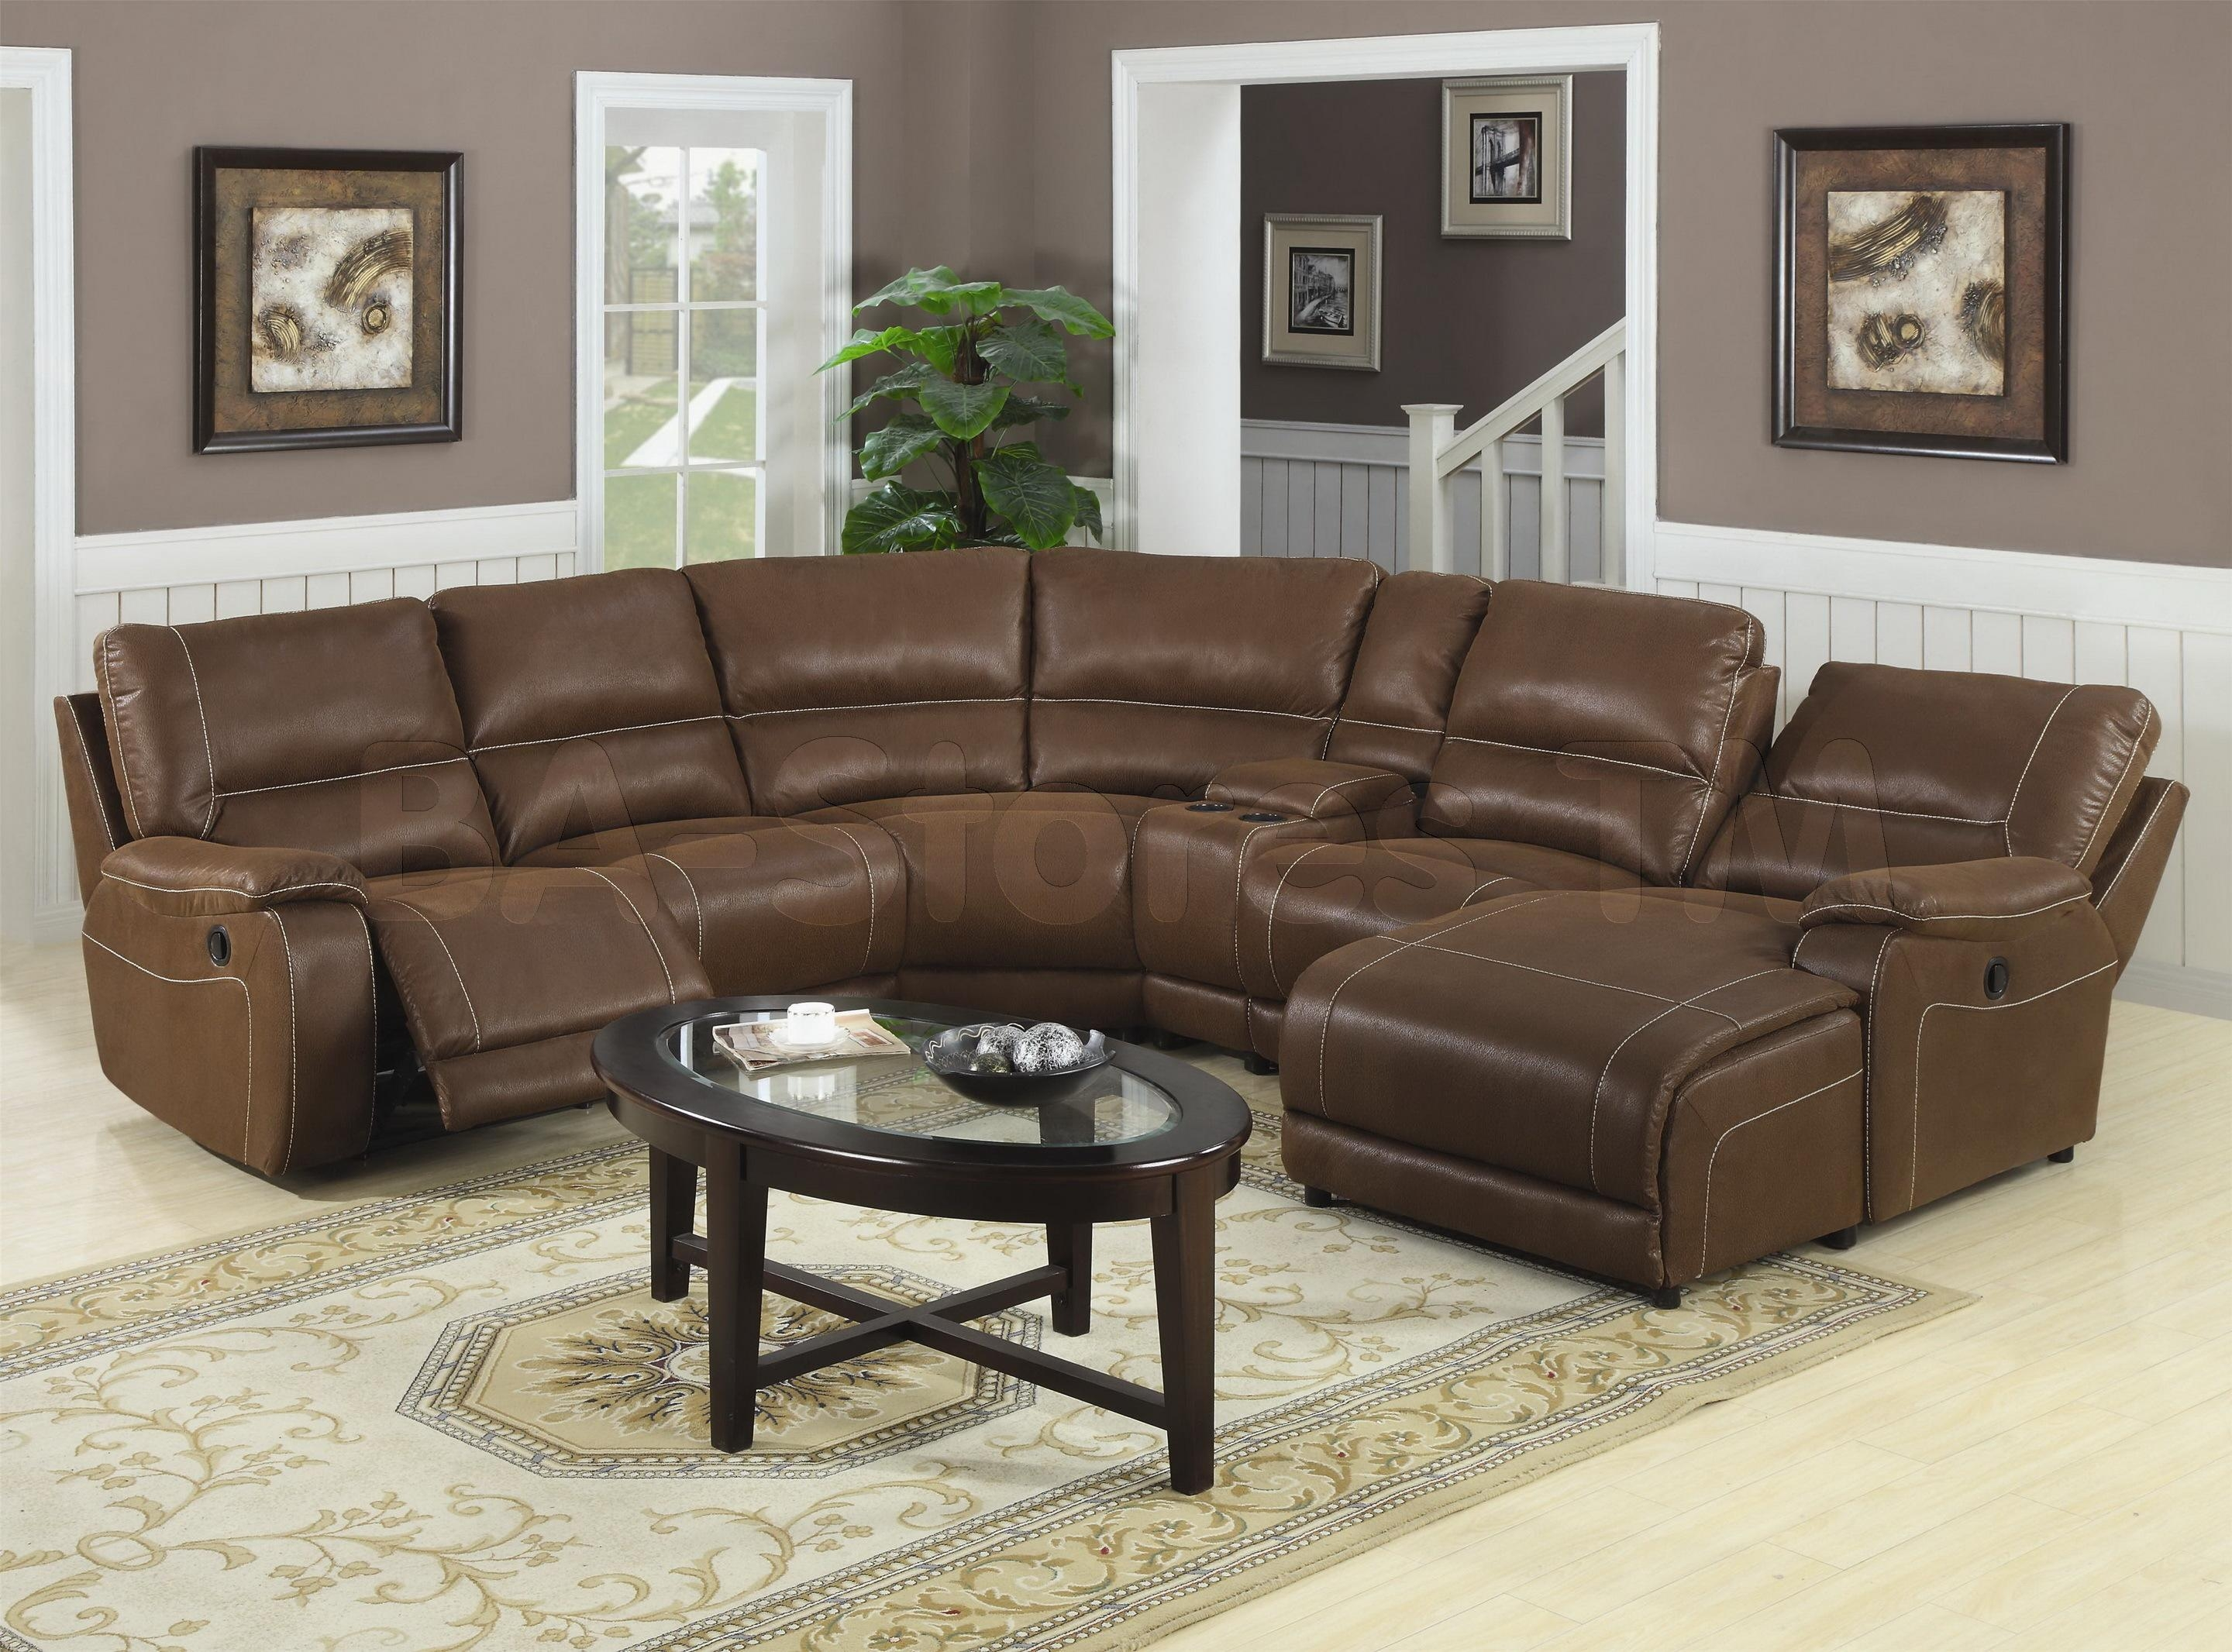 Curved Sectional Sofas For Small Spaces | Tehranmix Decoration With Regard To Small Curved Sectional Sofas (View 18 of 20)